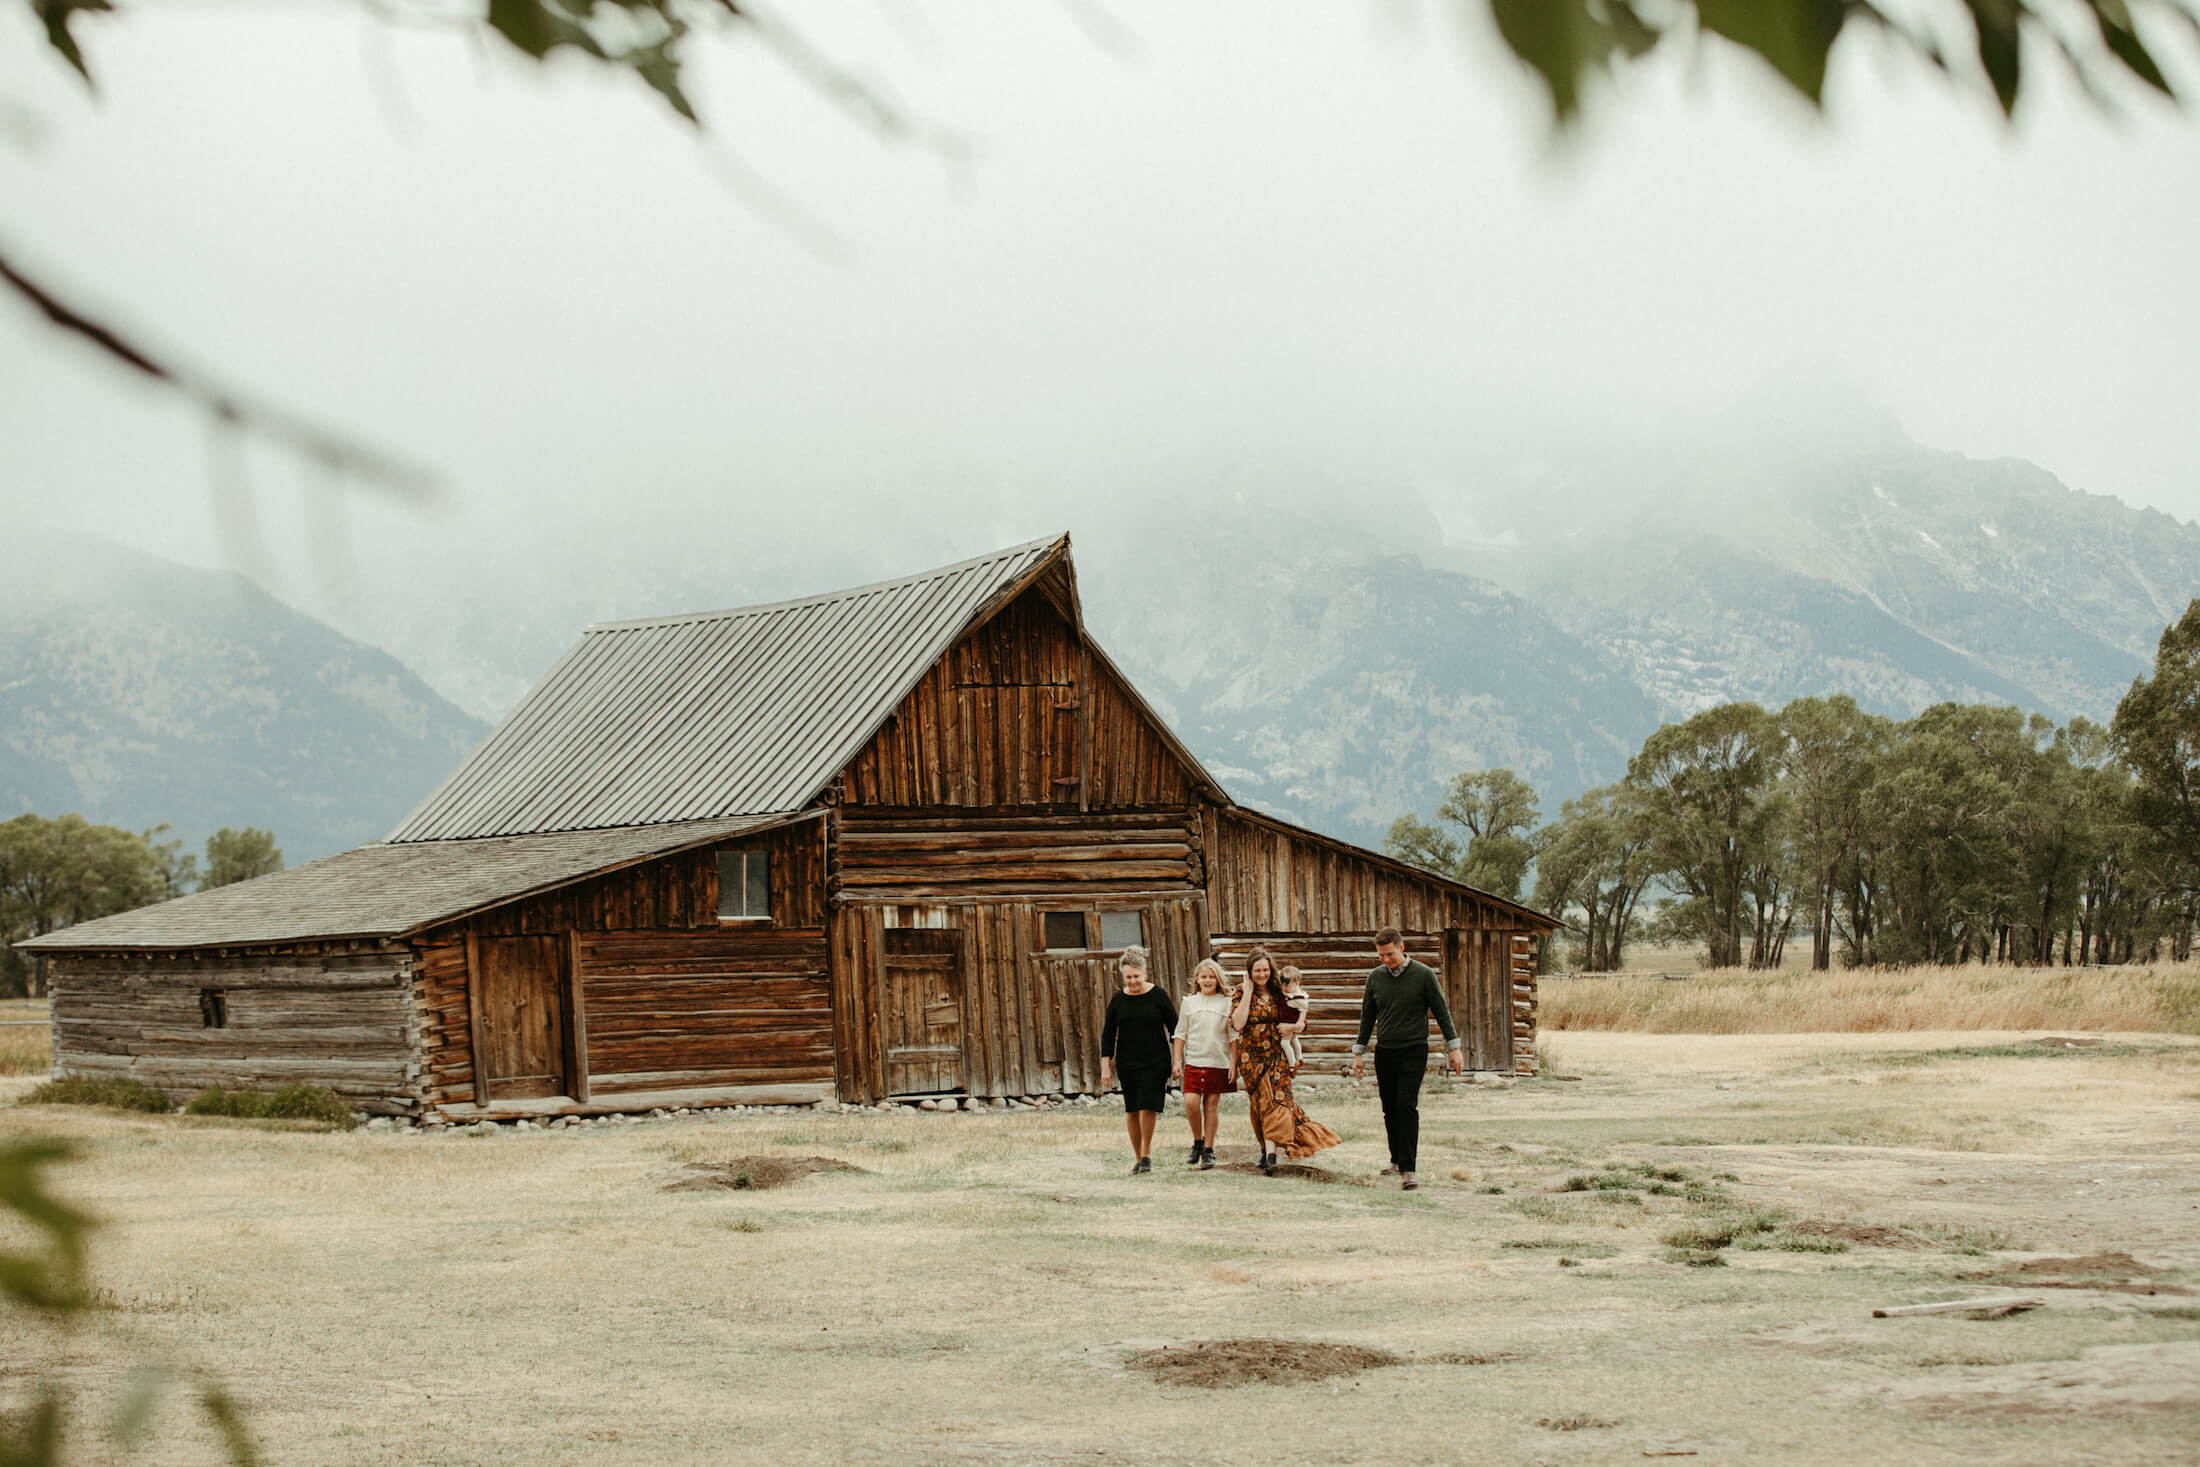 Family of 4 walking in front of a red barn in Jackson Hole, Wyoming